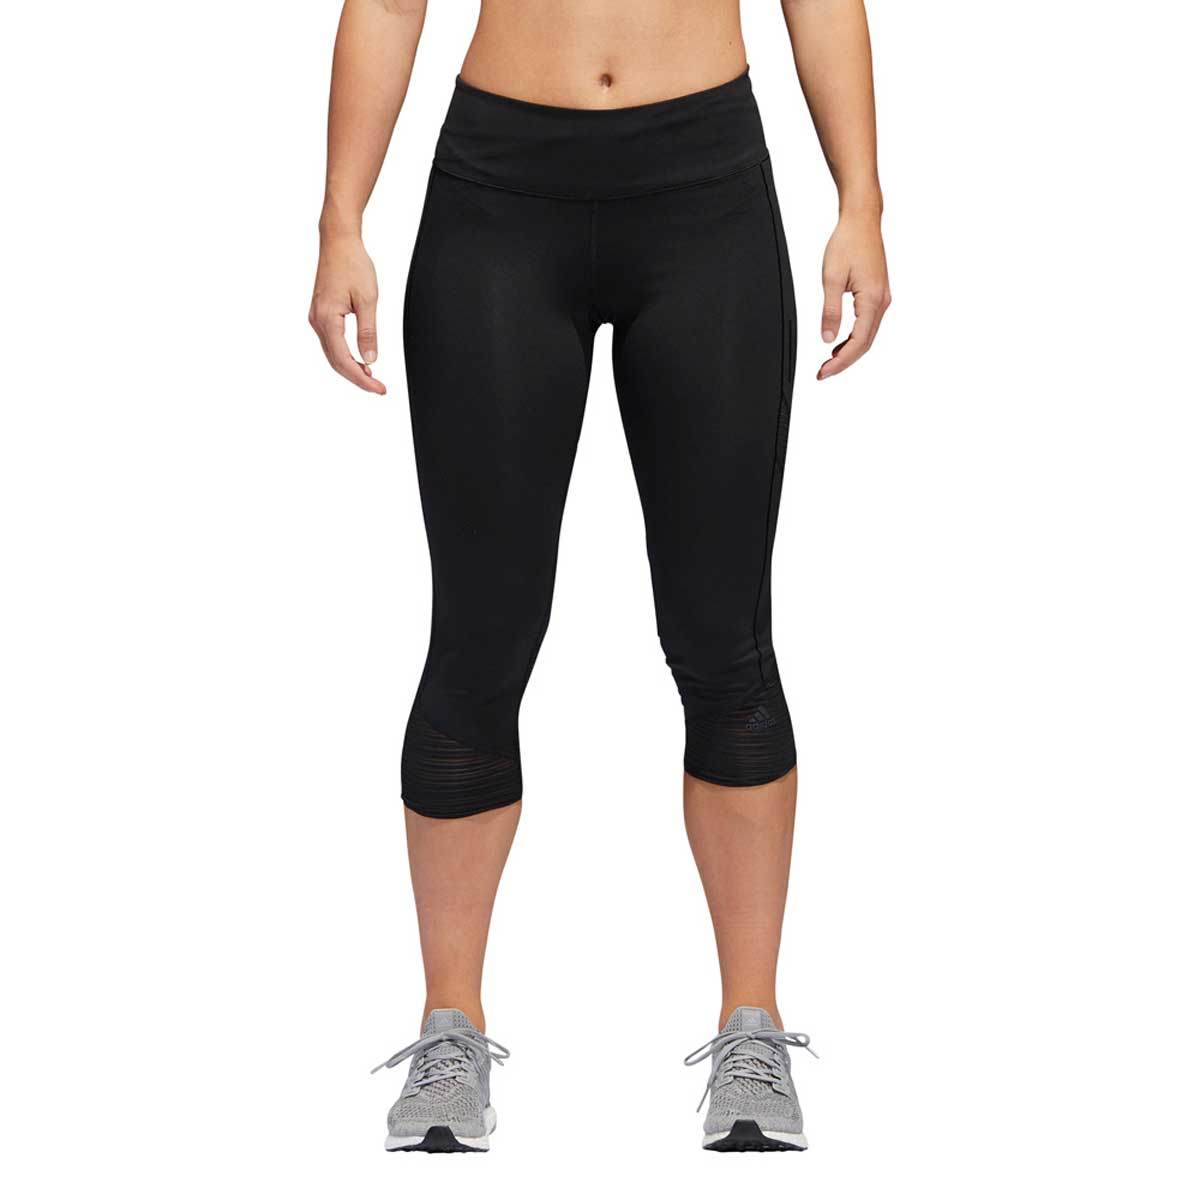 e20bff4b1ba Buy Adidas How We D0 3/4 Womens Tights (Black) Online at Lowest Price in  India